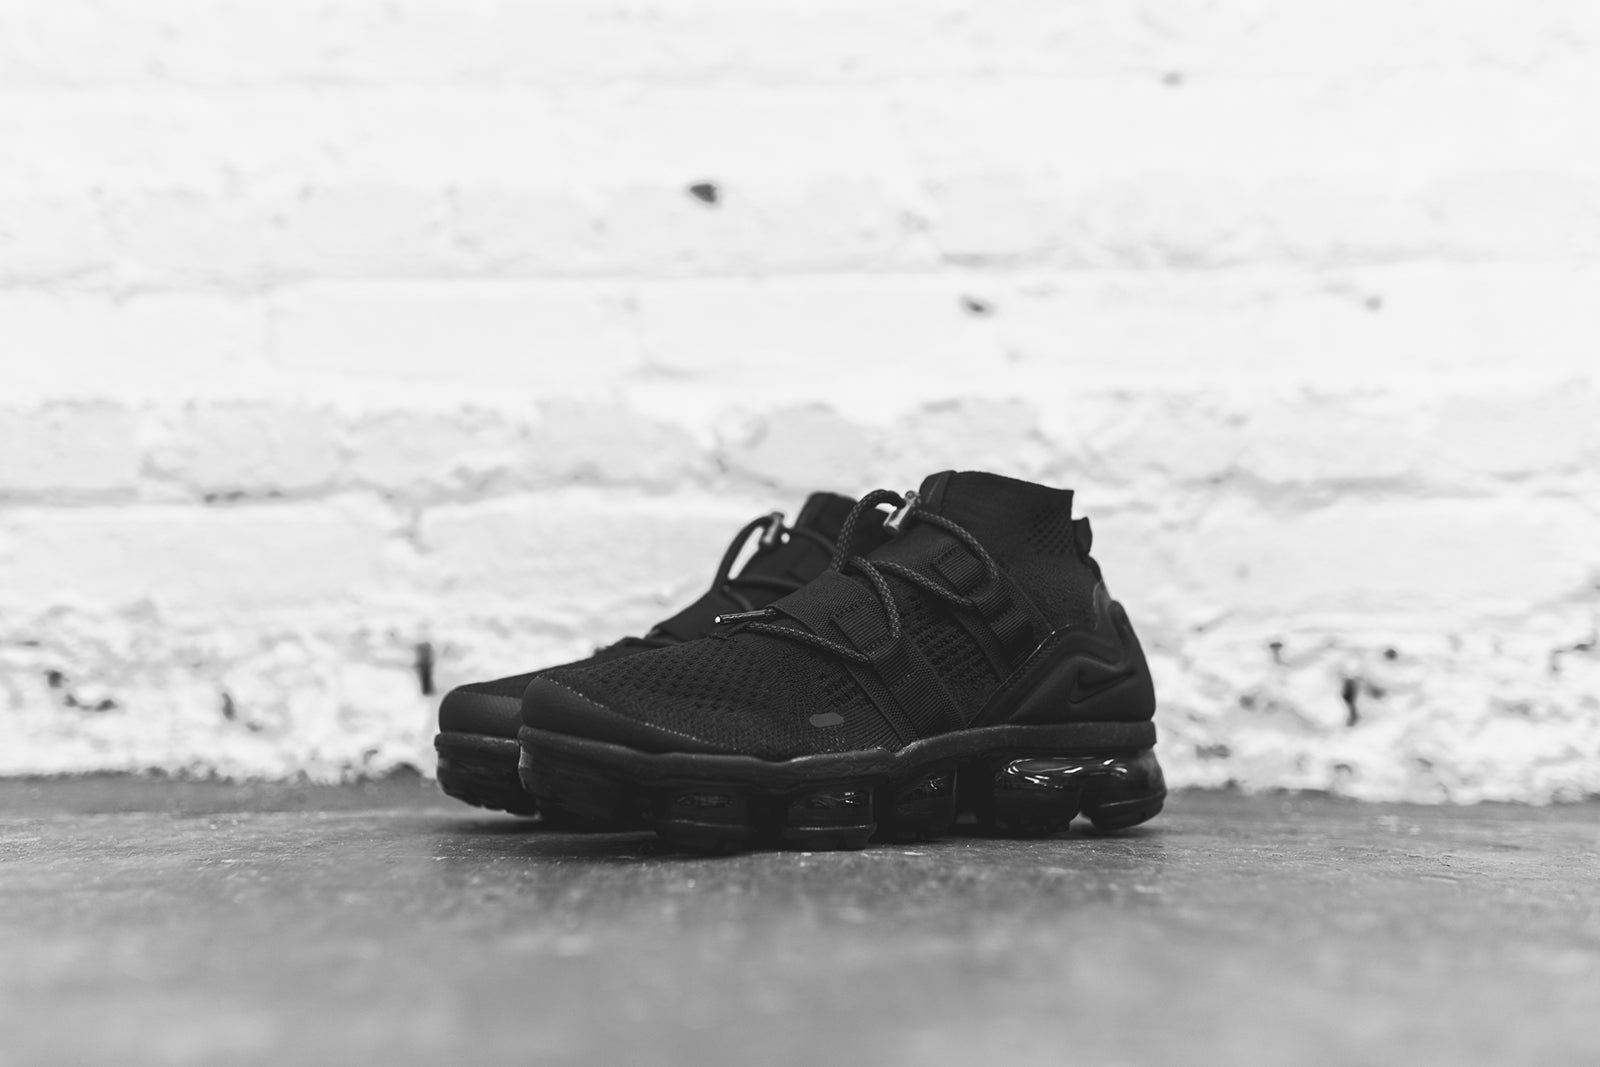 c0aad9a68c683 Nike Air VaporMax FK Utility - Triple Black. January 04